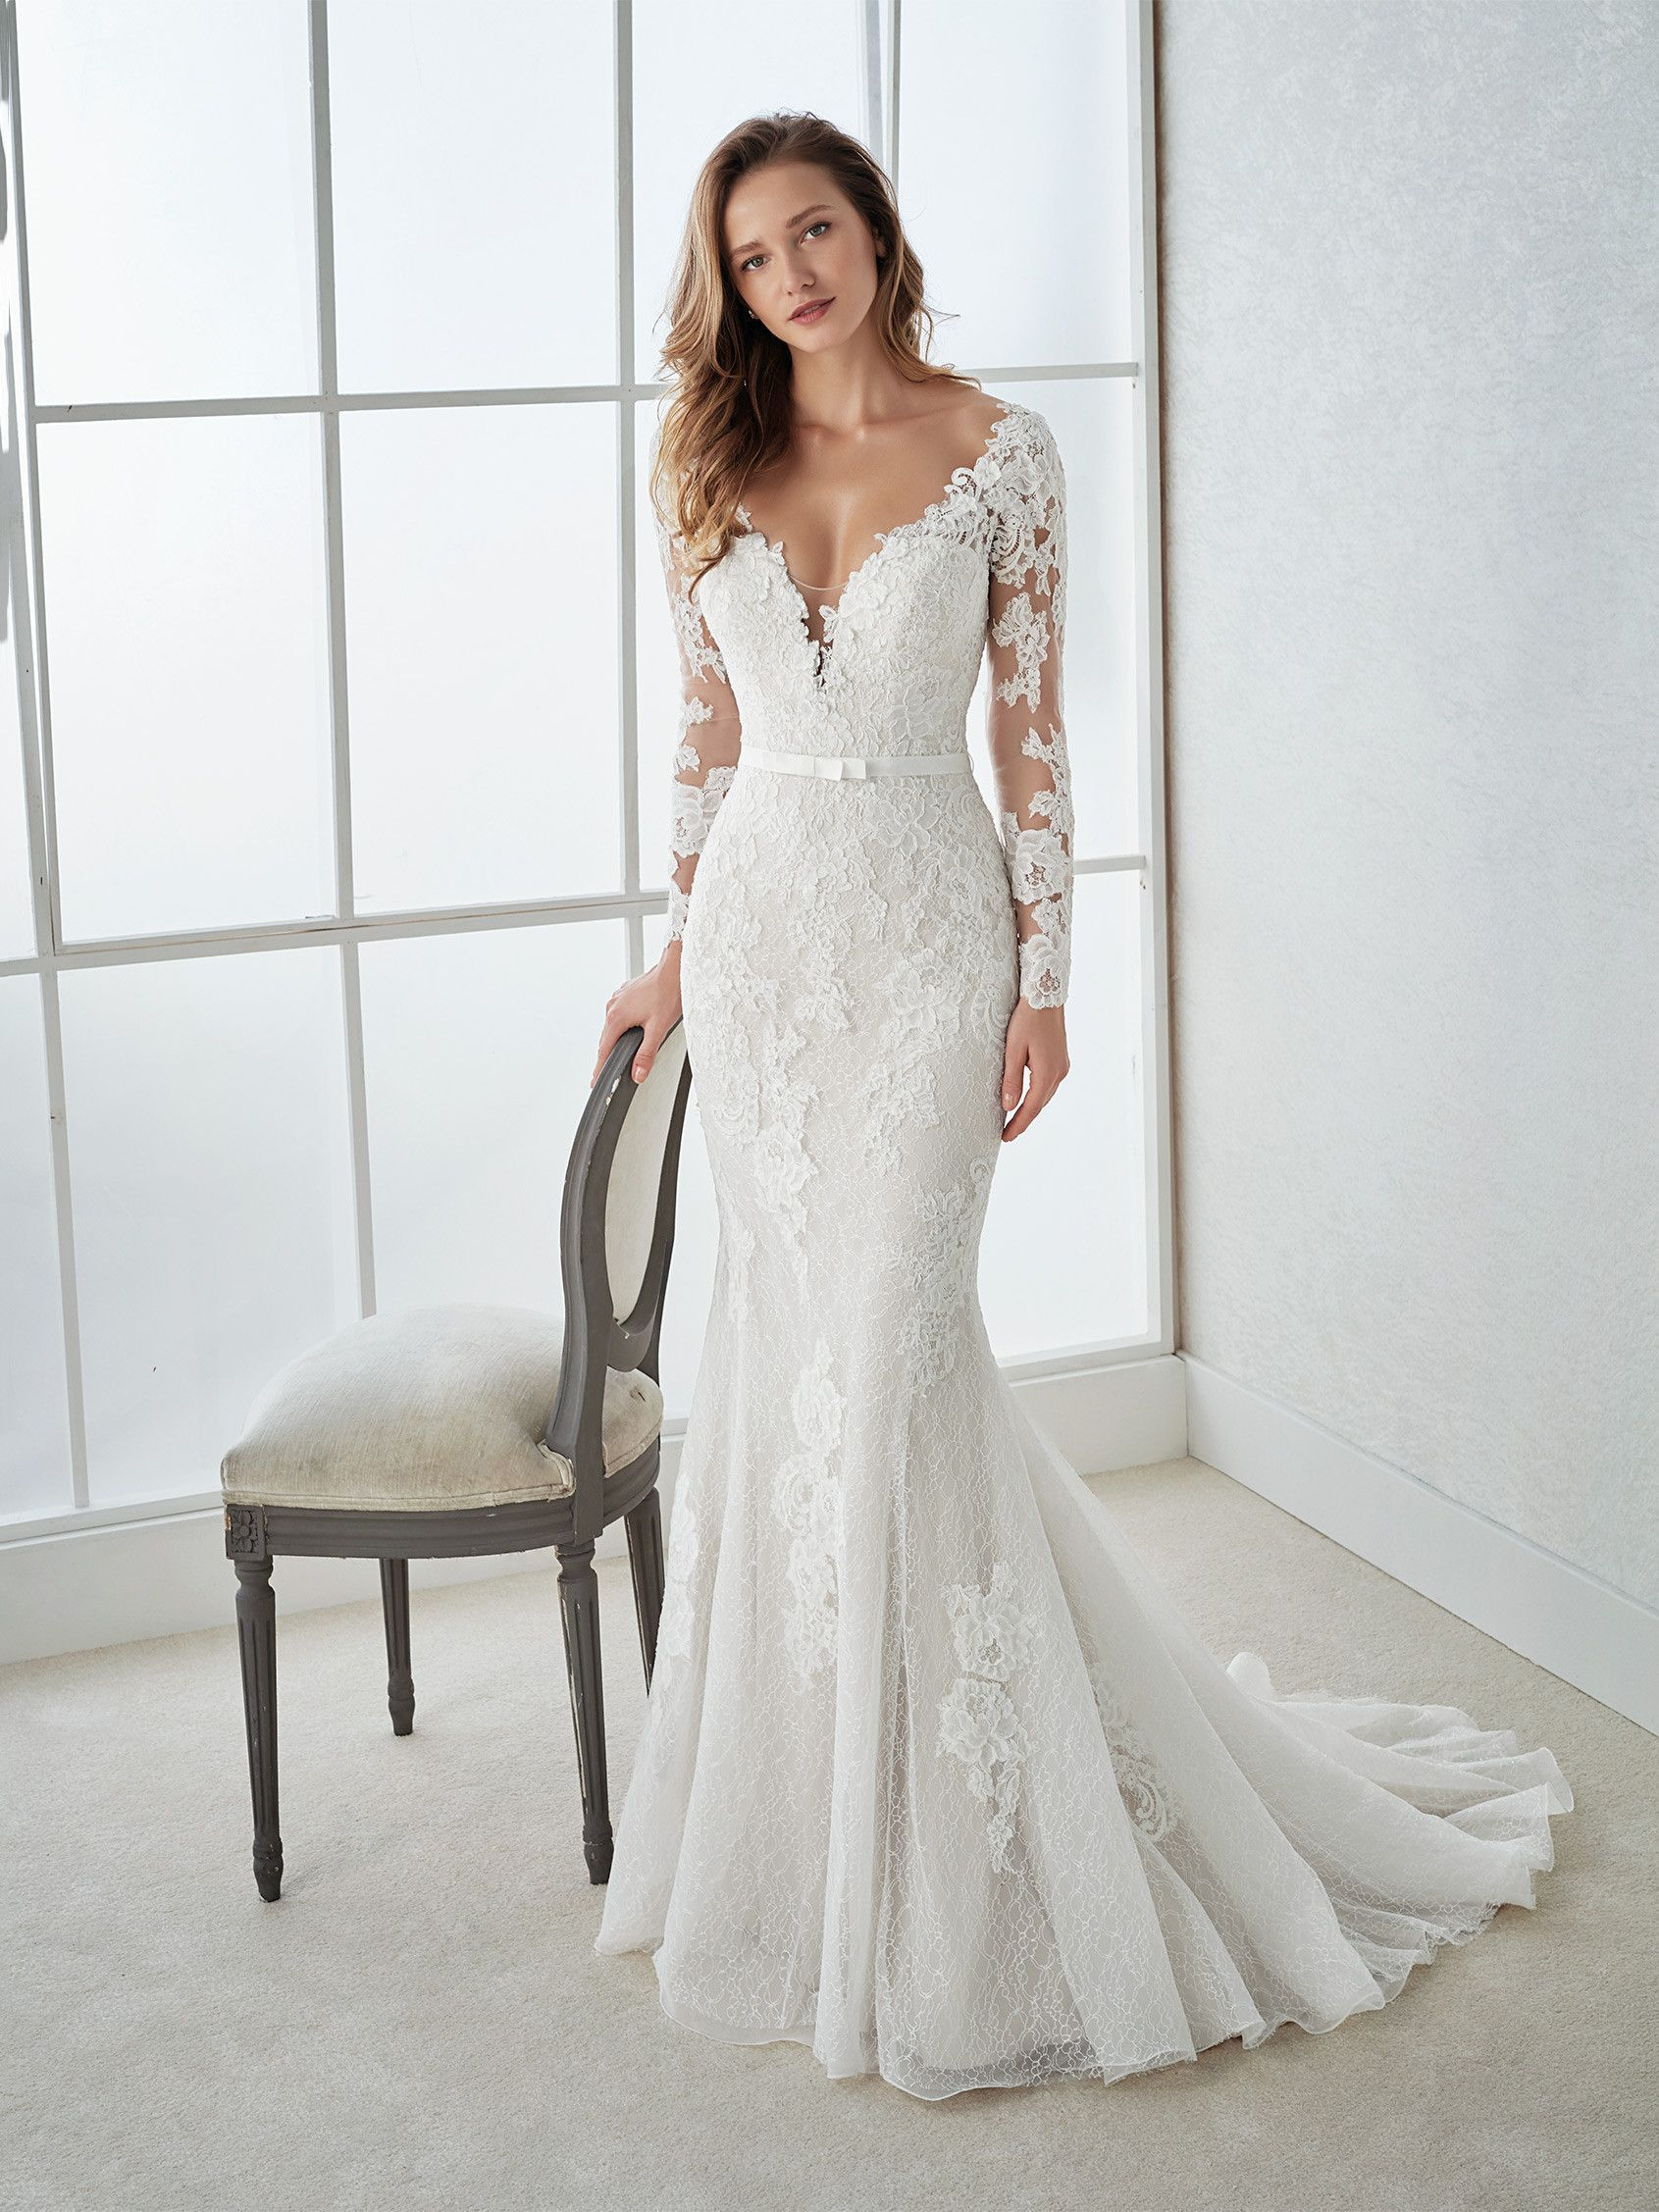 Wedding Dress With Illusion Neckline And Long Sleeves A Second Skin Effect An Elegant Low Waist Mermaid Design V Neck